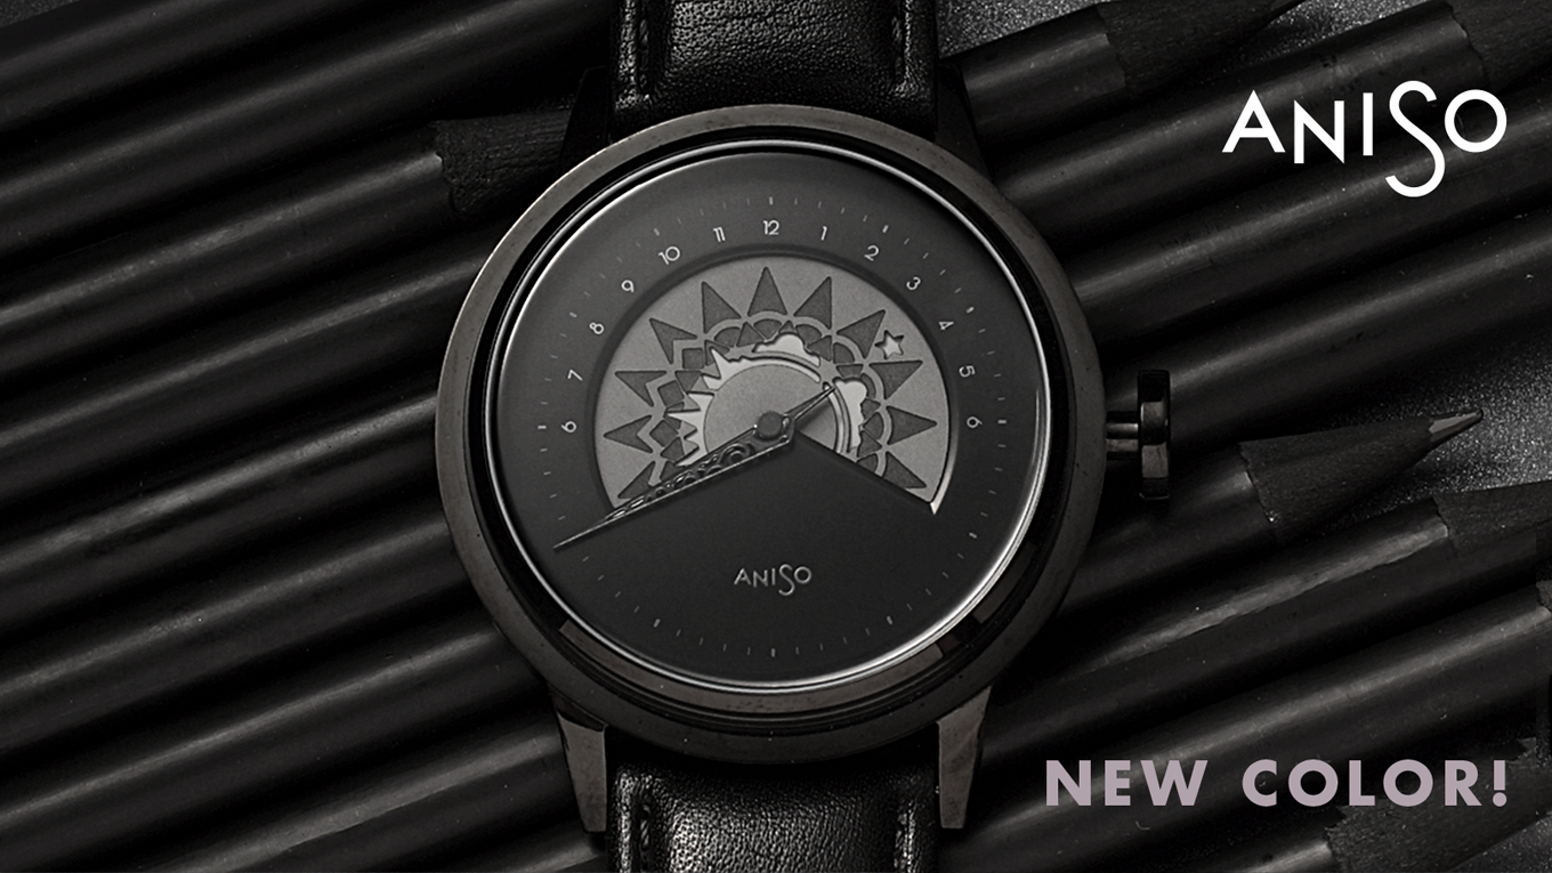 A watch inspired by our fascination with time, space, and moment in life.